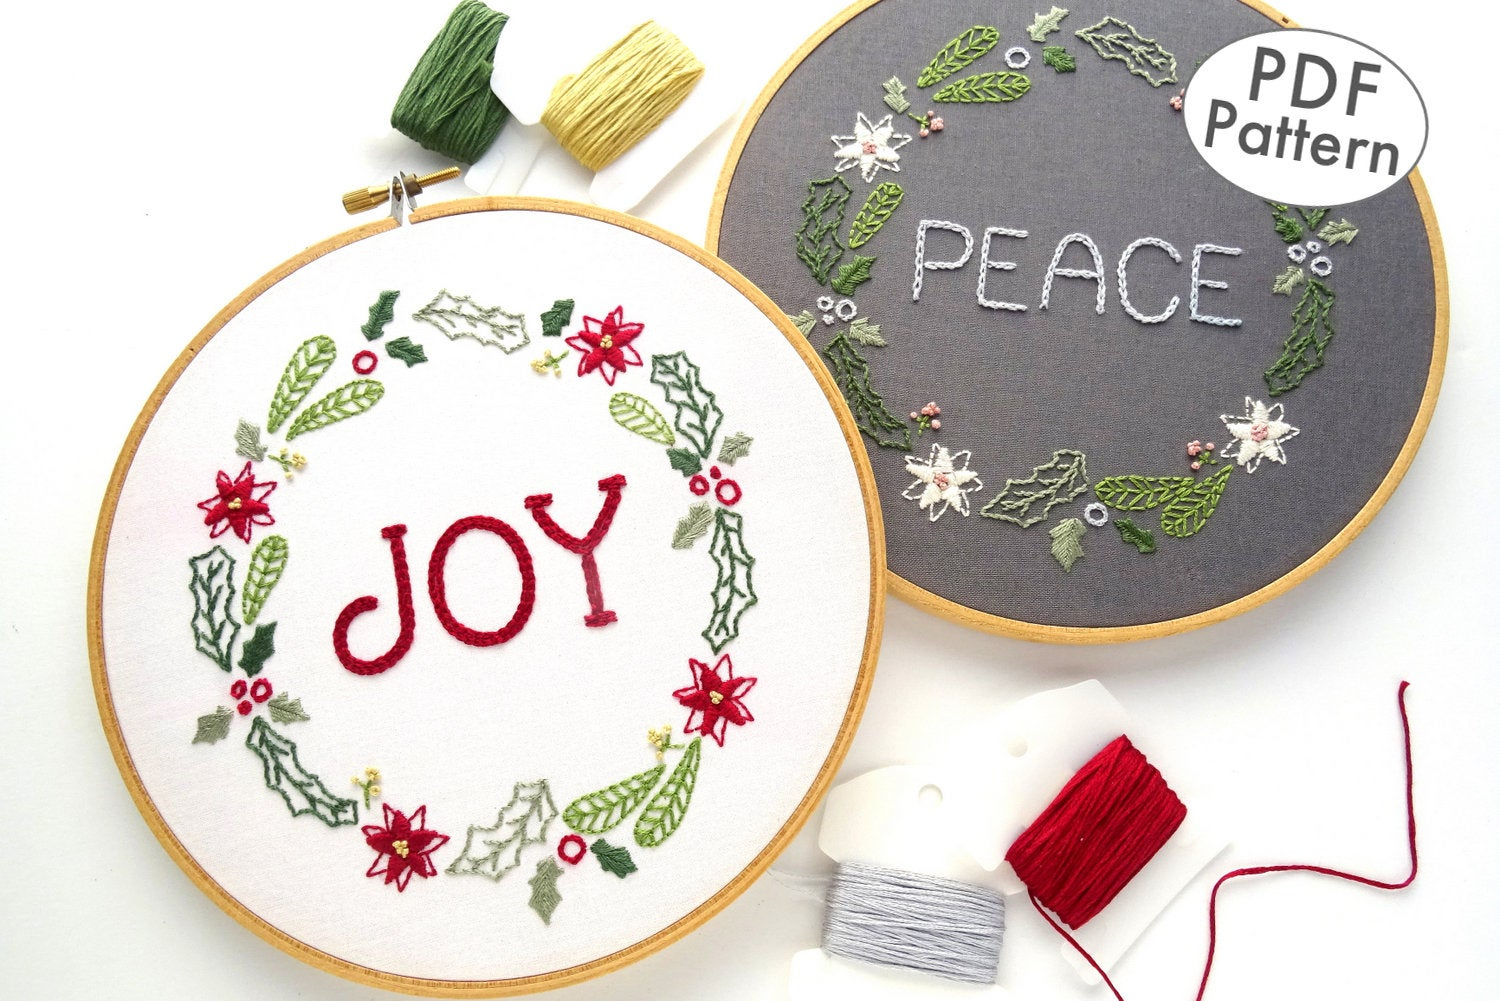 Christmas Hand Embroidery Patterns Christmas Wreath Hand Embroidery Pattern Pdf Embroidery Download Christmas Gift Ideas Diy Holiday Gifts Peace Embroidery Design